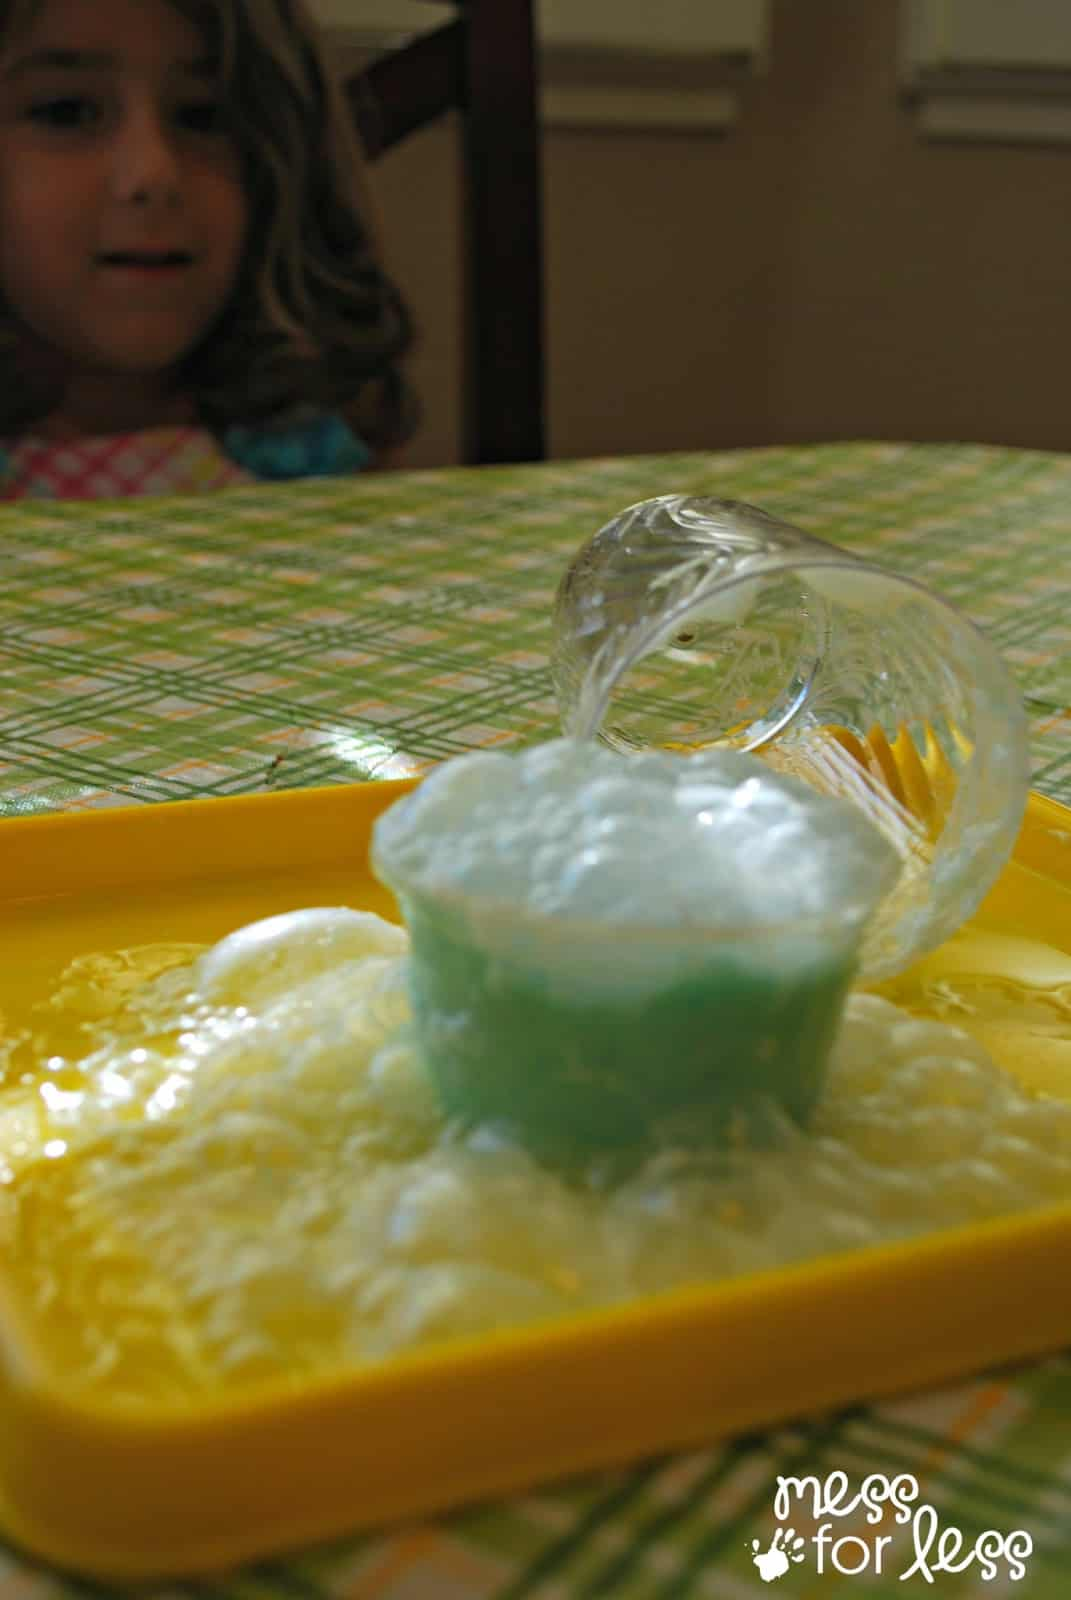 Erupting Play Dough